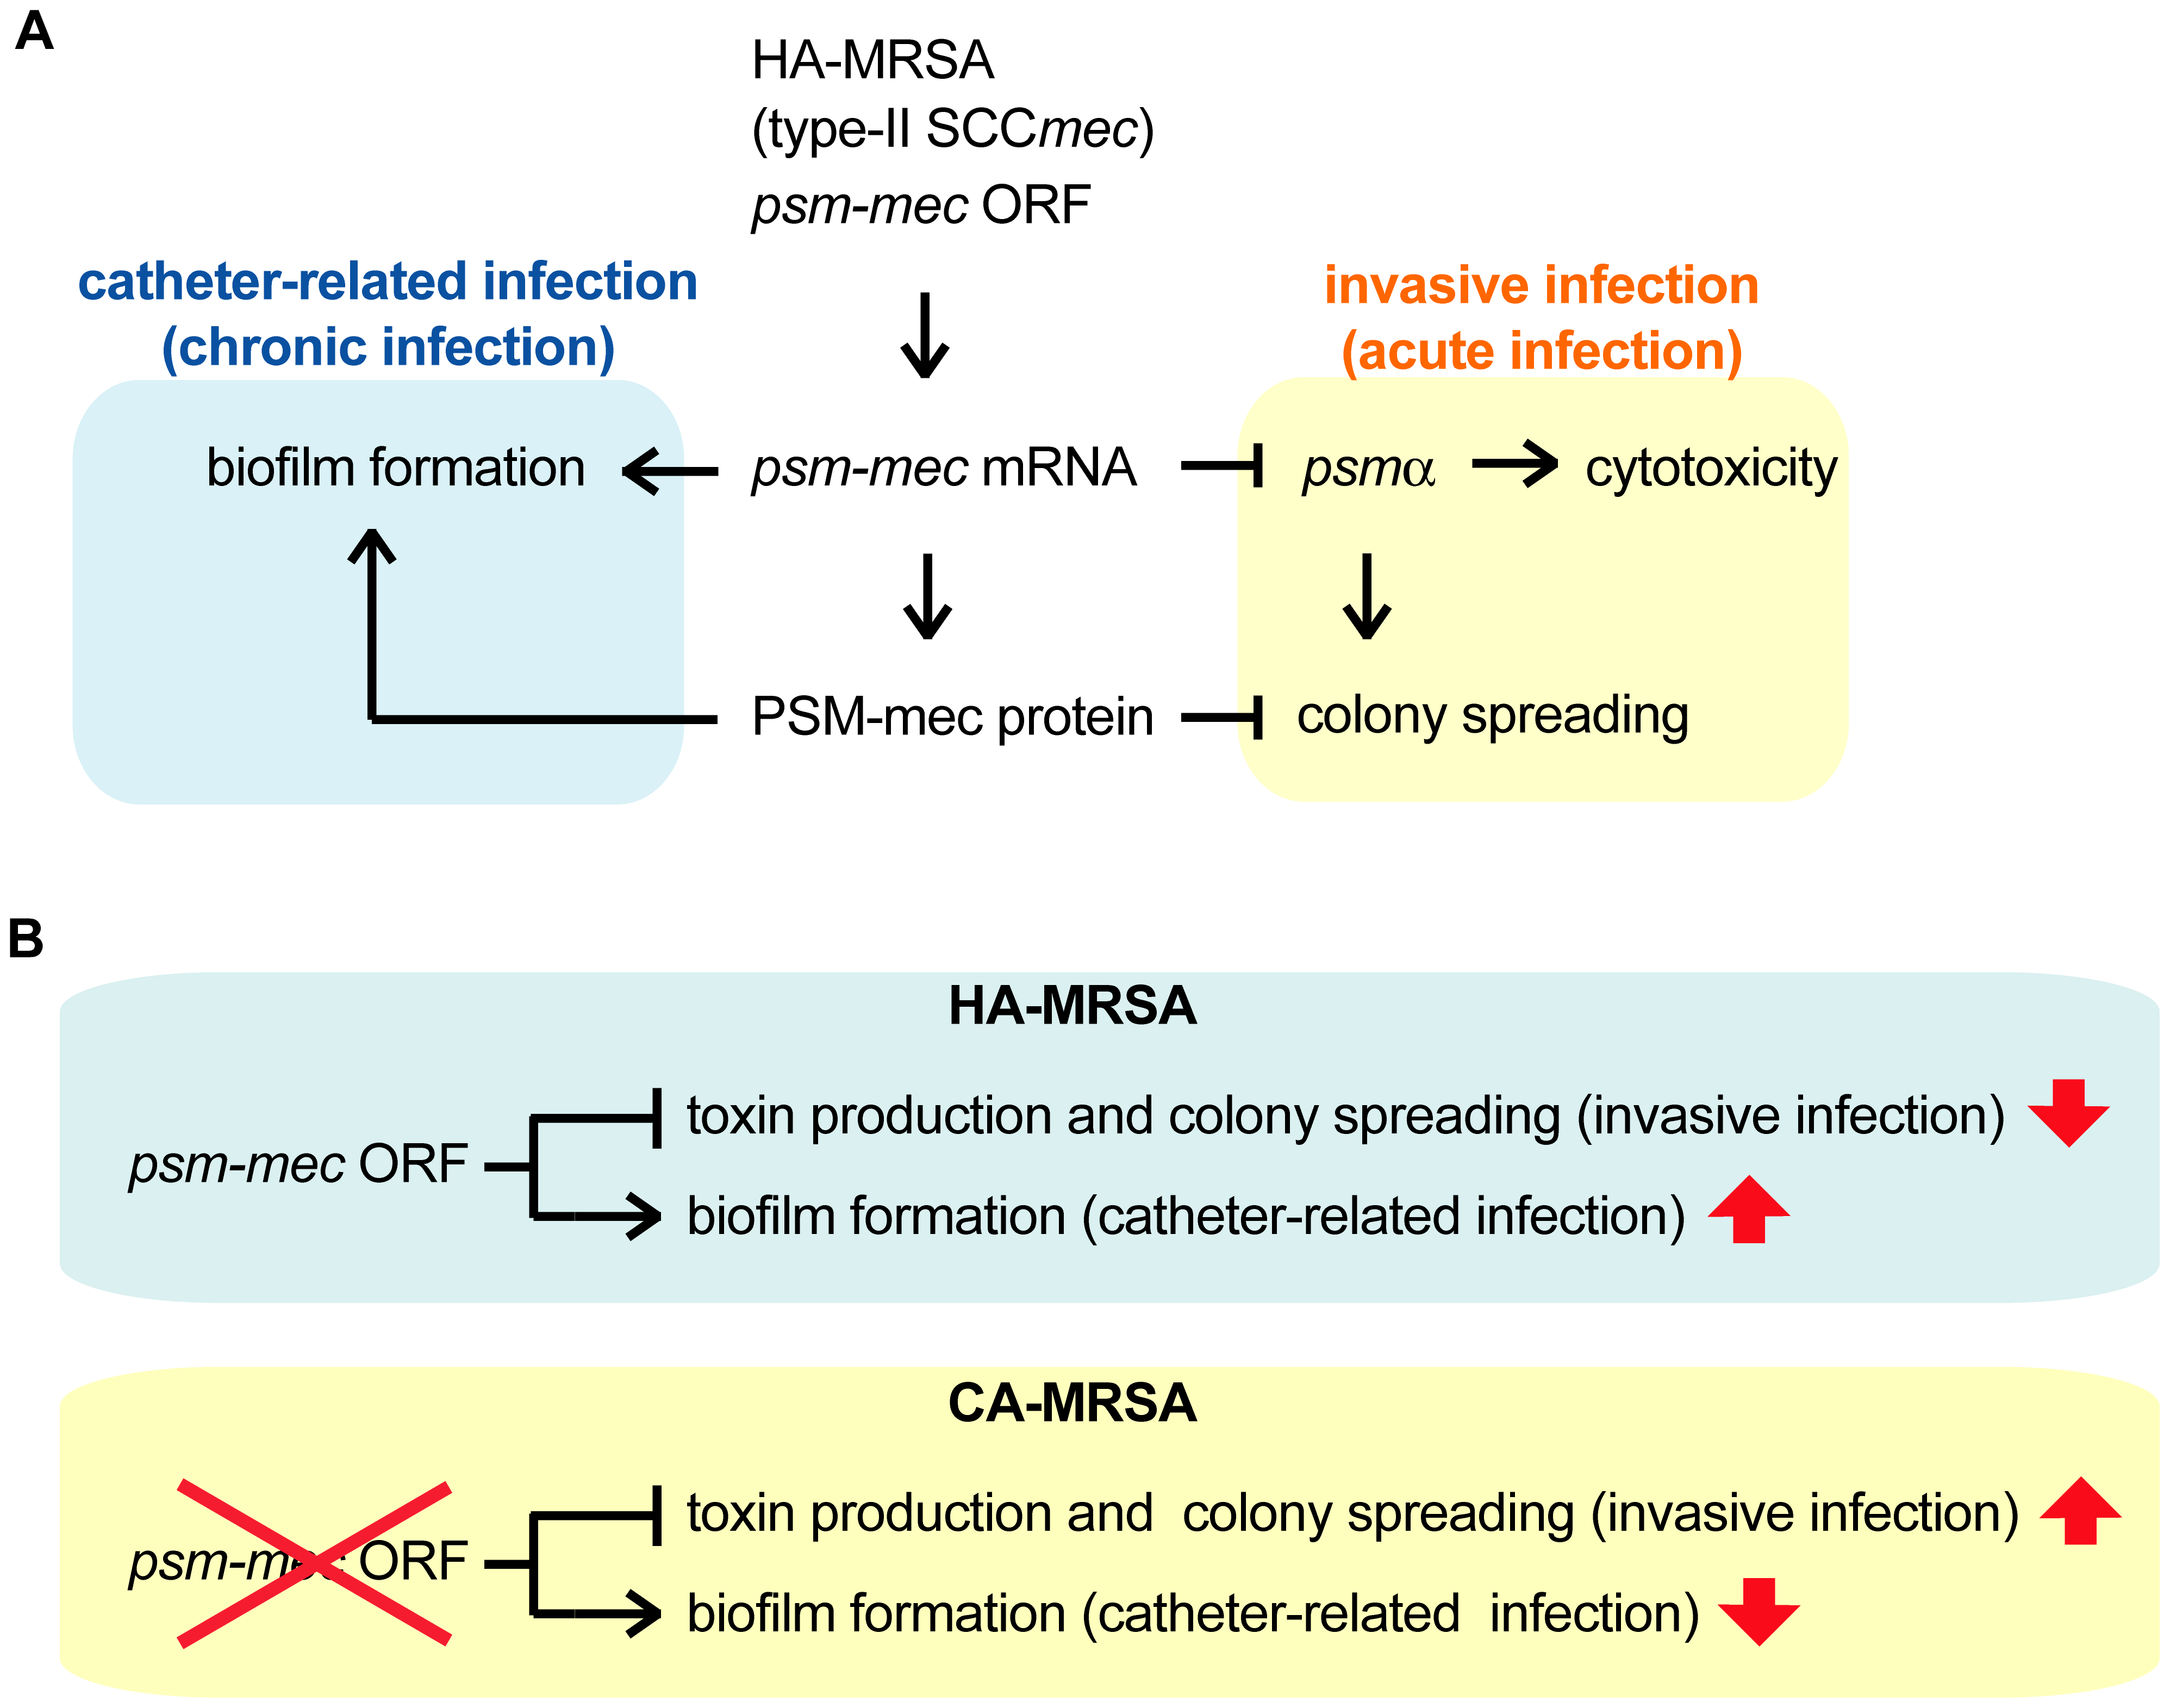 Model of the alteration of <i>S. aureus</i> virulence phenotype exerted by <i>psm-mec</i> mRNA and PSM-mec protein.